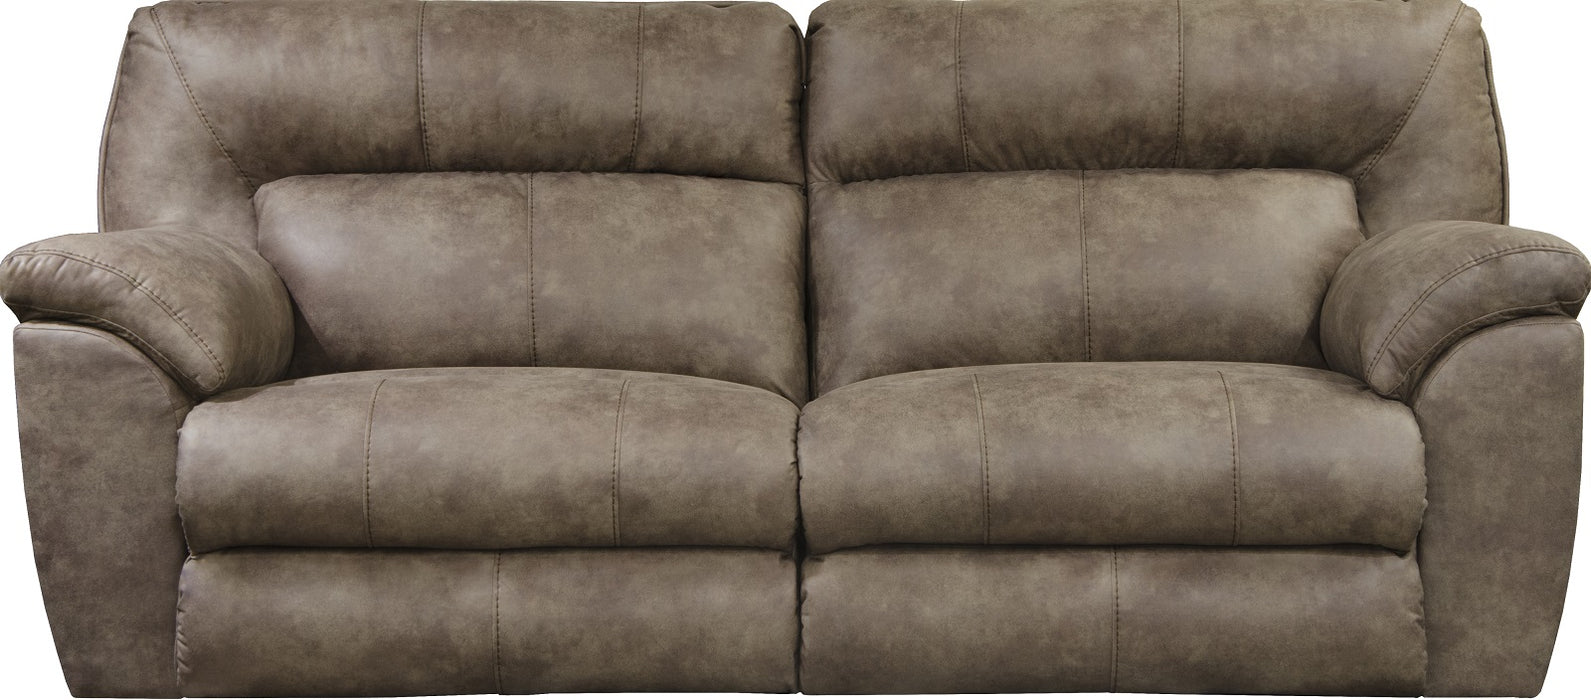 "Catnapper Hollins 88""Power Reclining Sofa in Coffee 62651/1429-49/0-0"